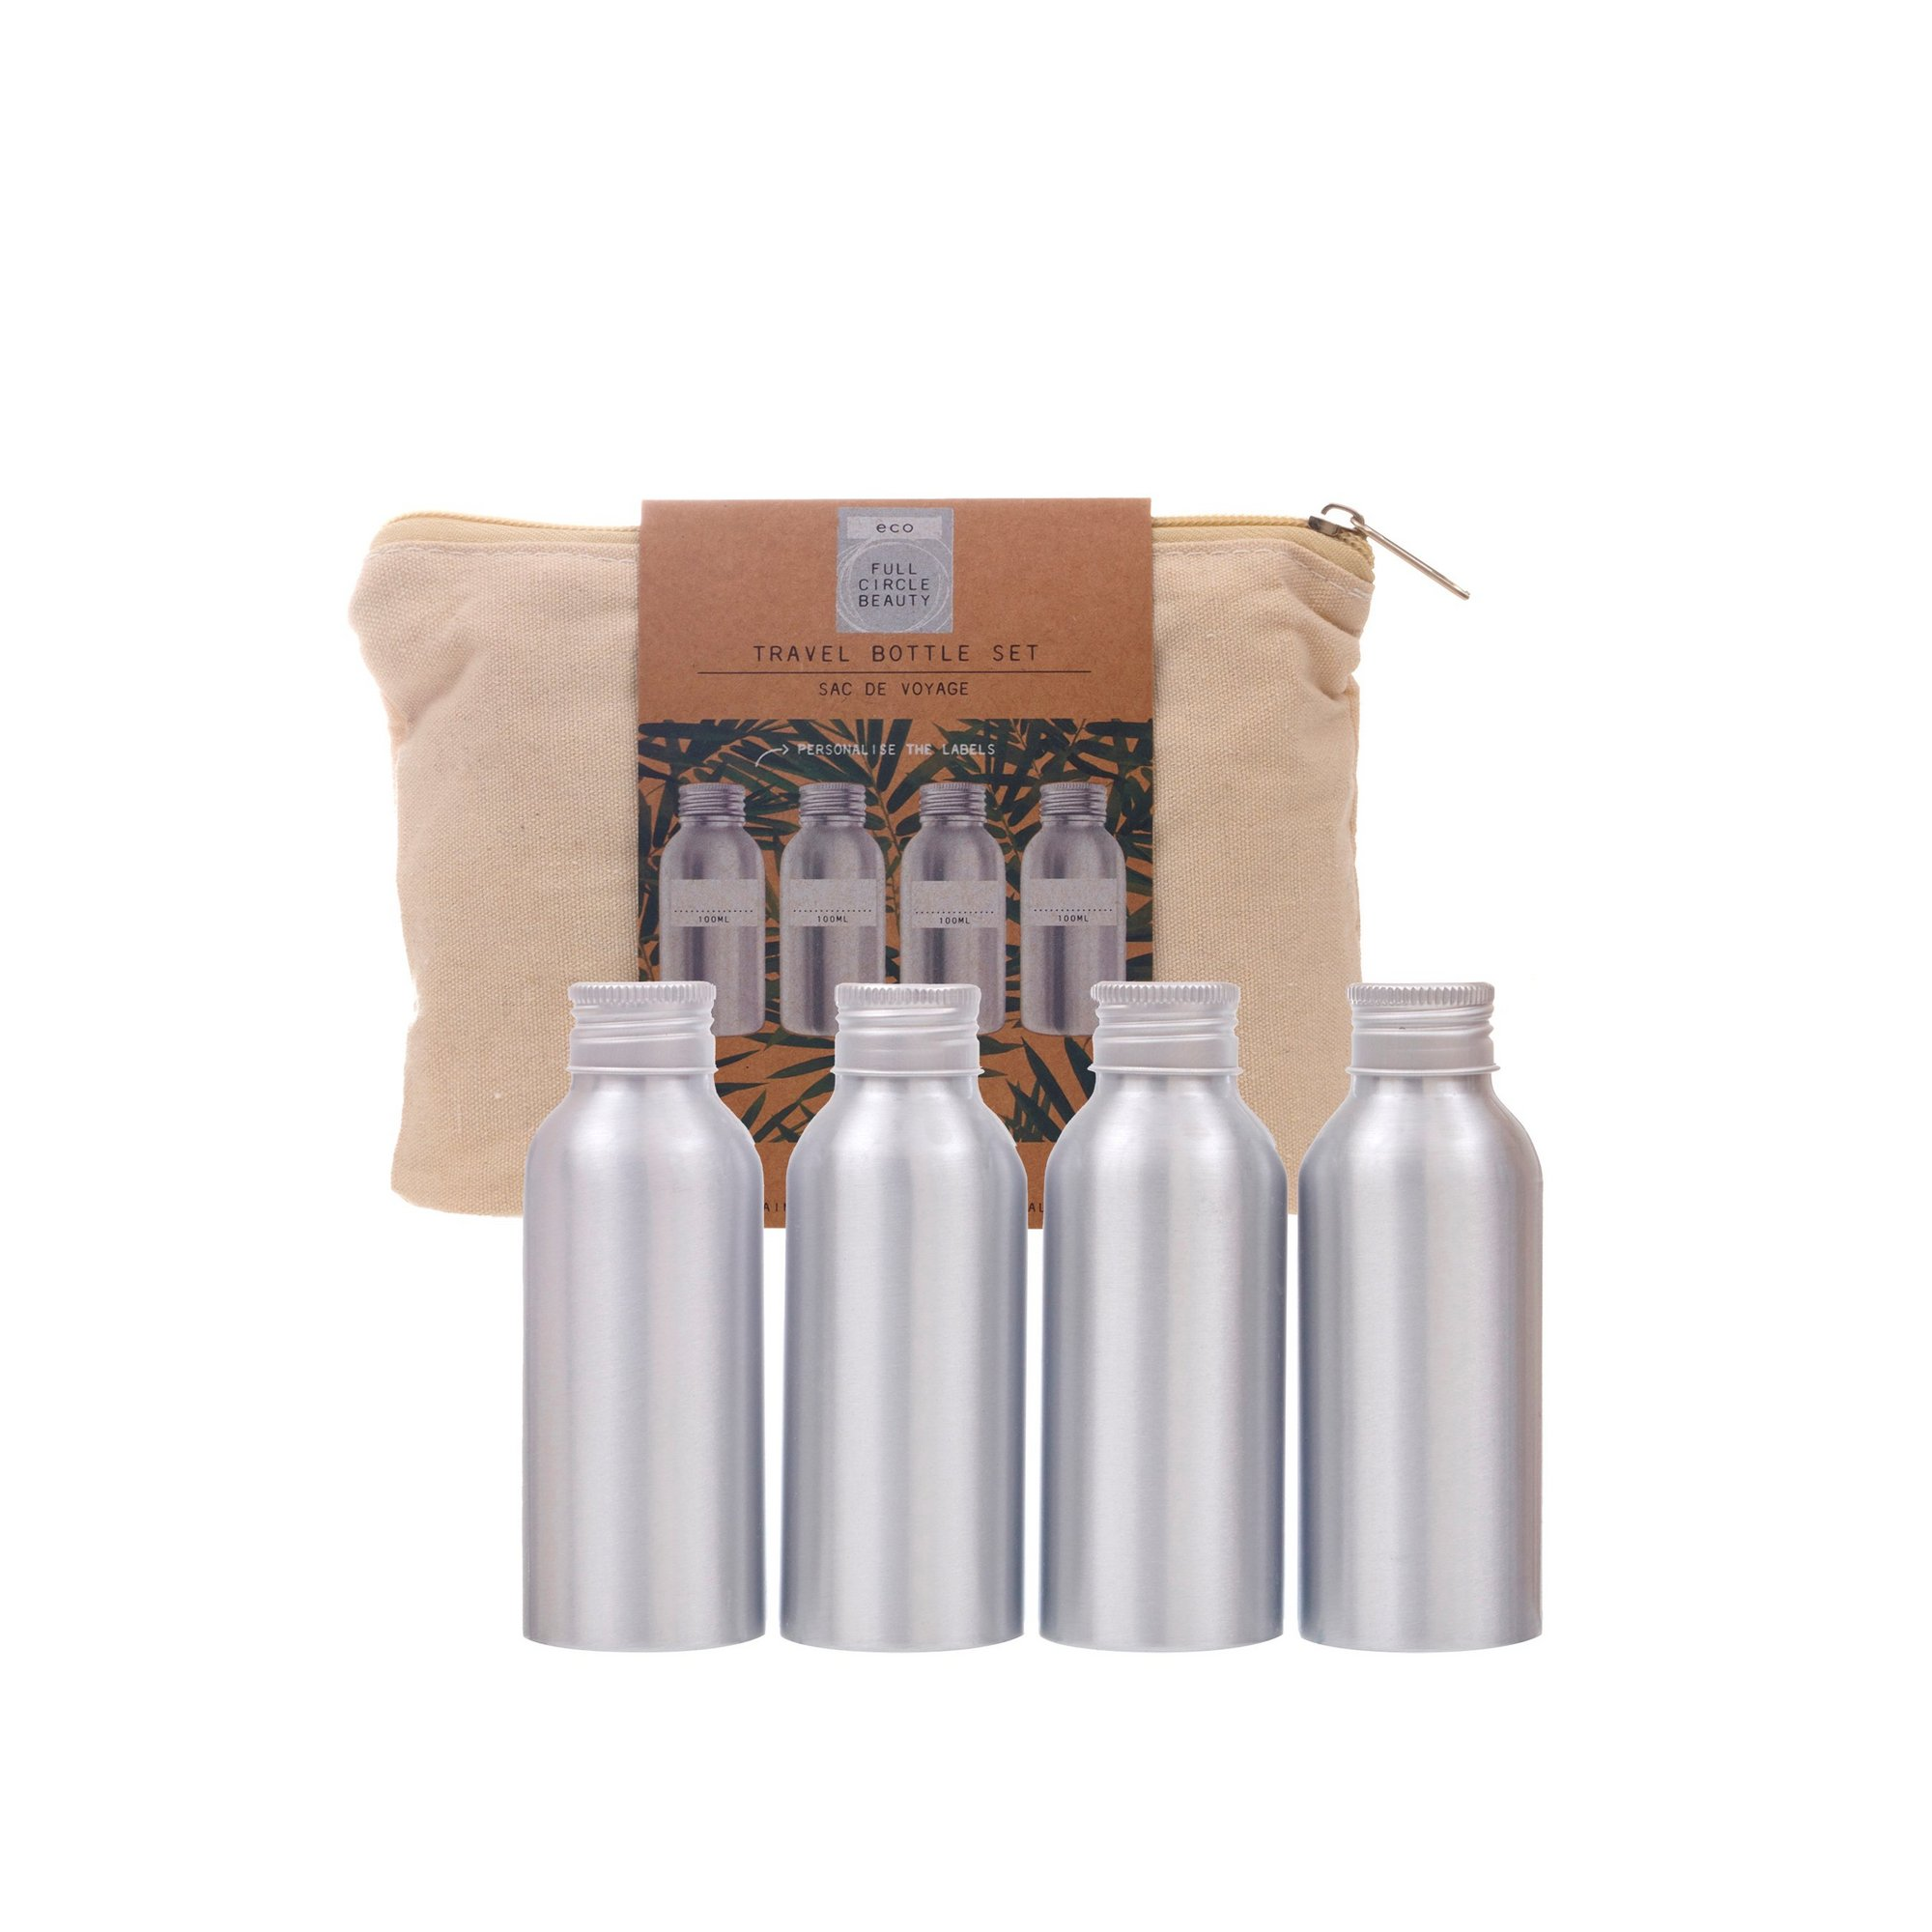 Image of Clean and Green Aluminium Travel Bottles in Canvas Bag